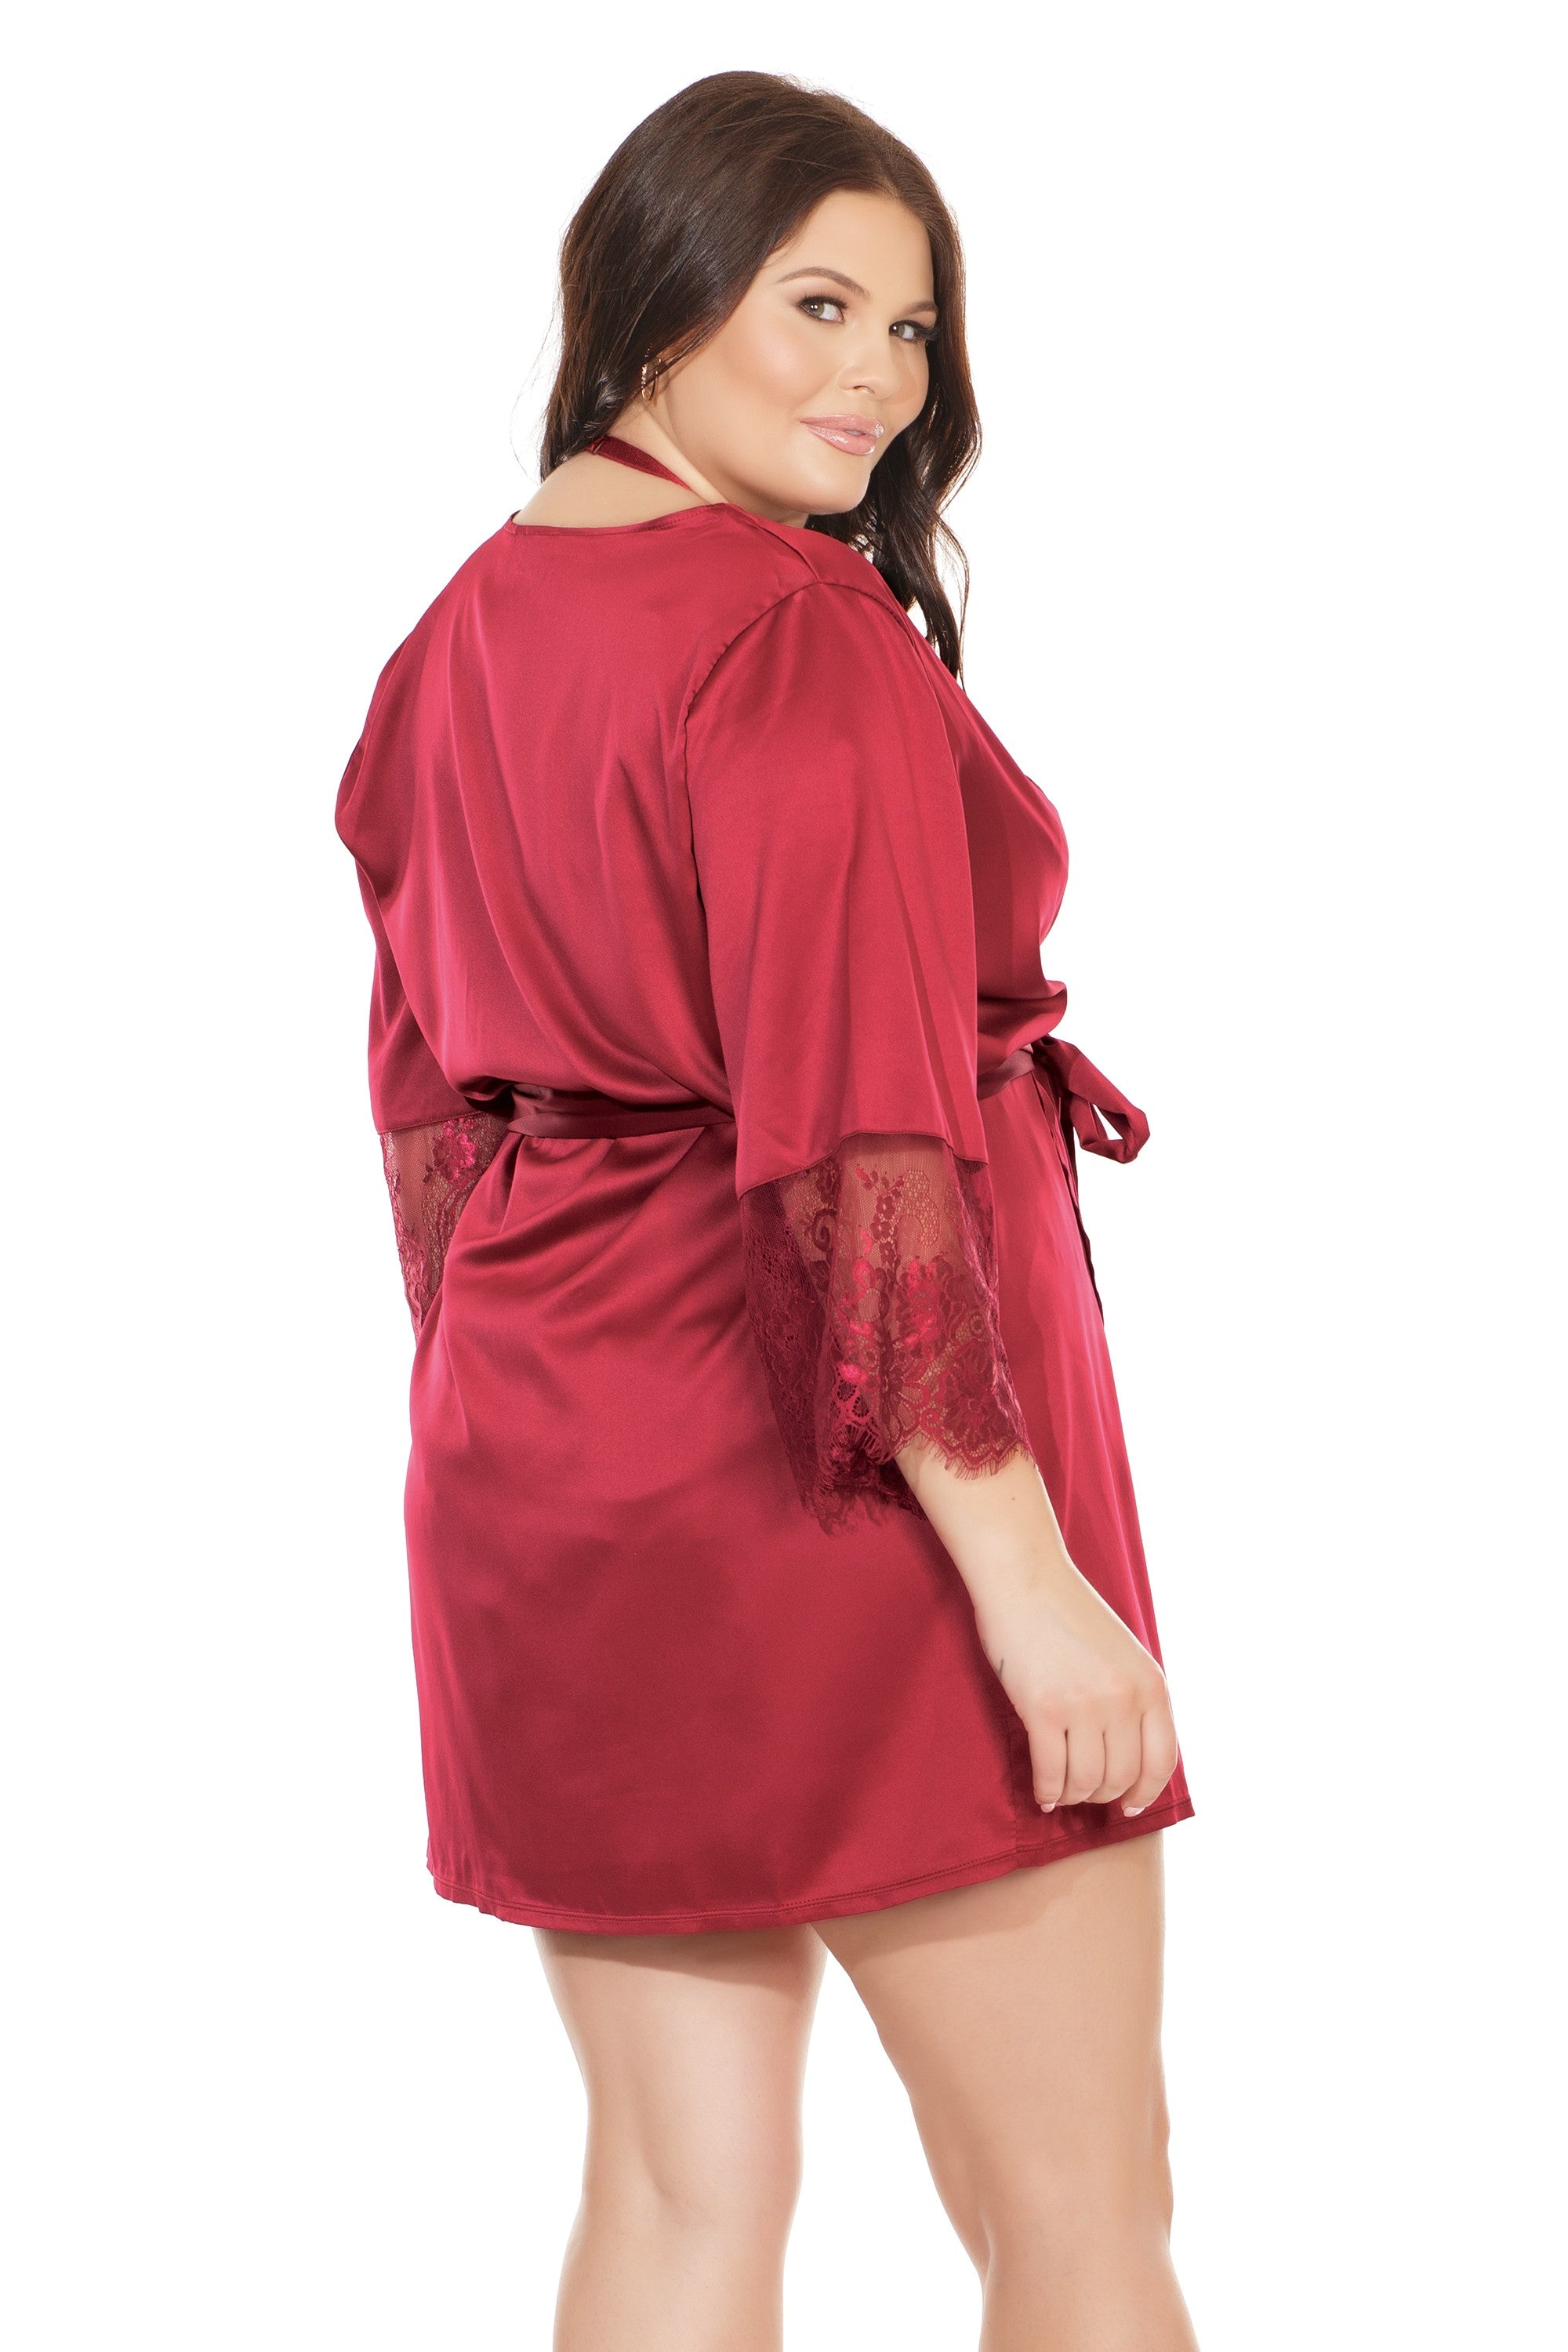 Merlot Satin Robe with Lace Trim (7224)